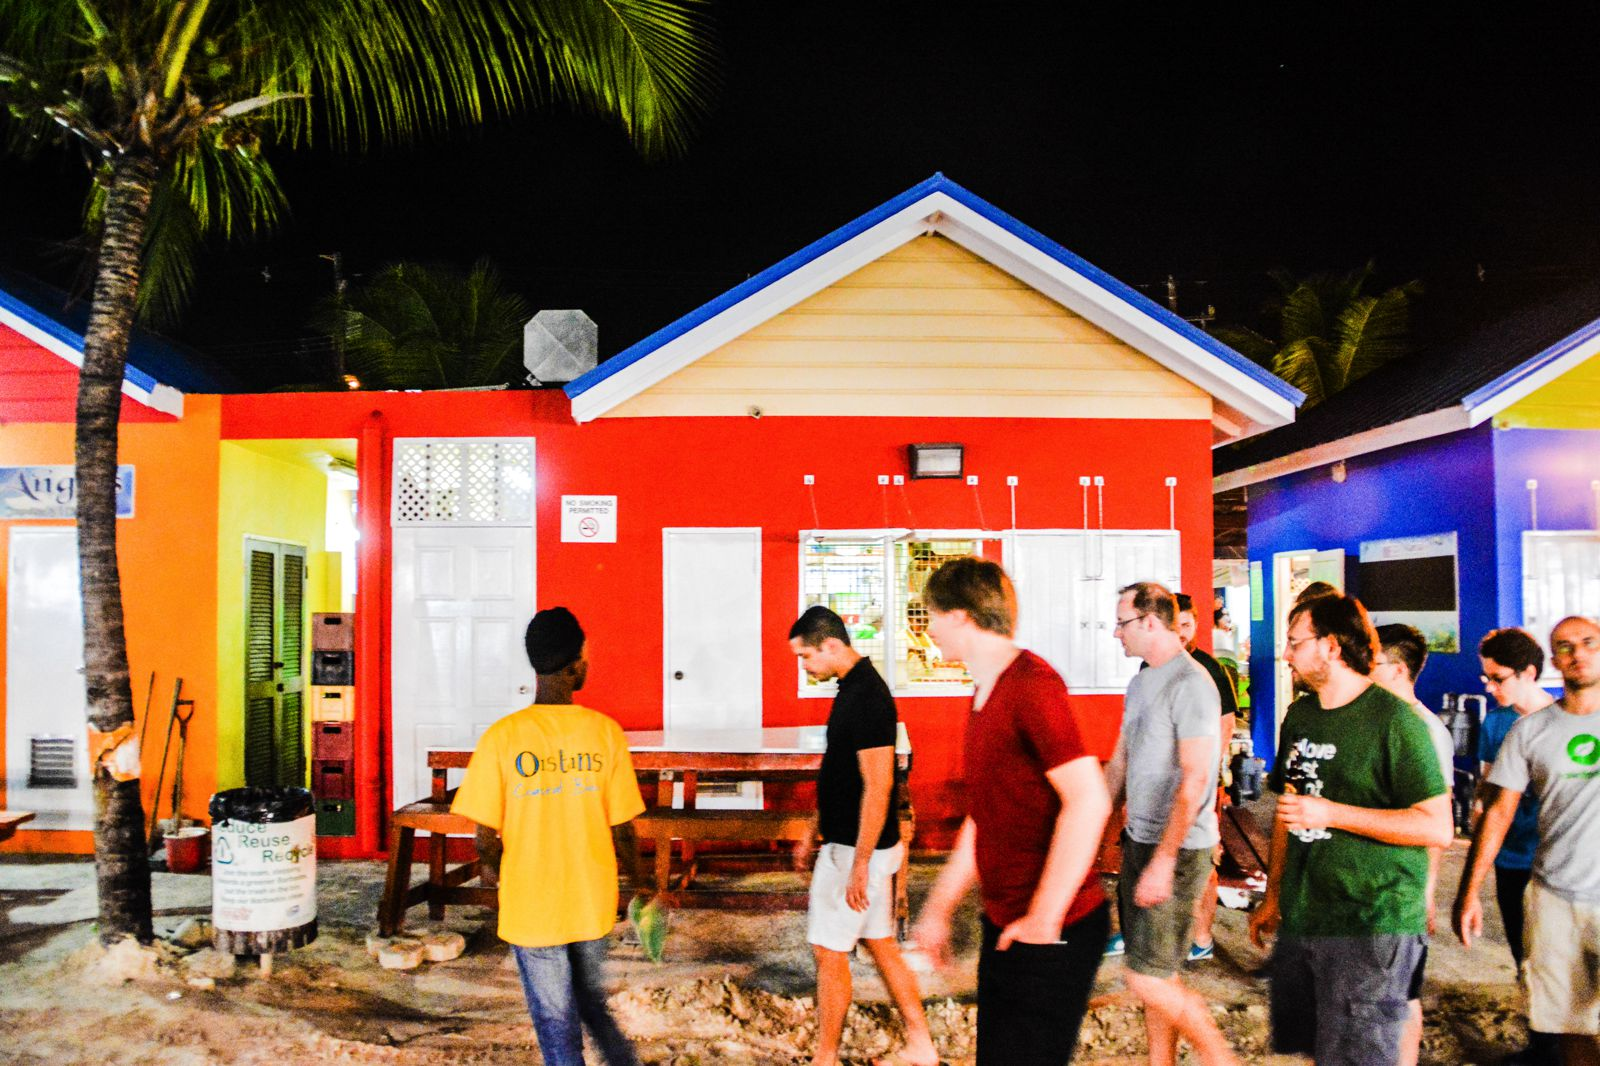 Spending An Exciting Evening At Oistins Fish Fry In Barbados (26)